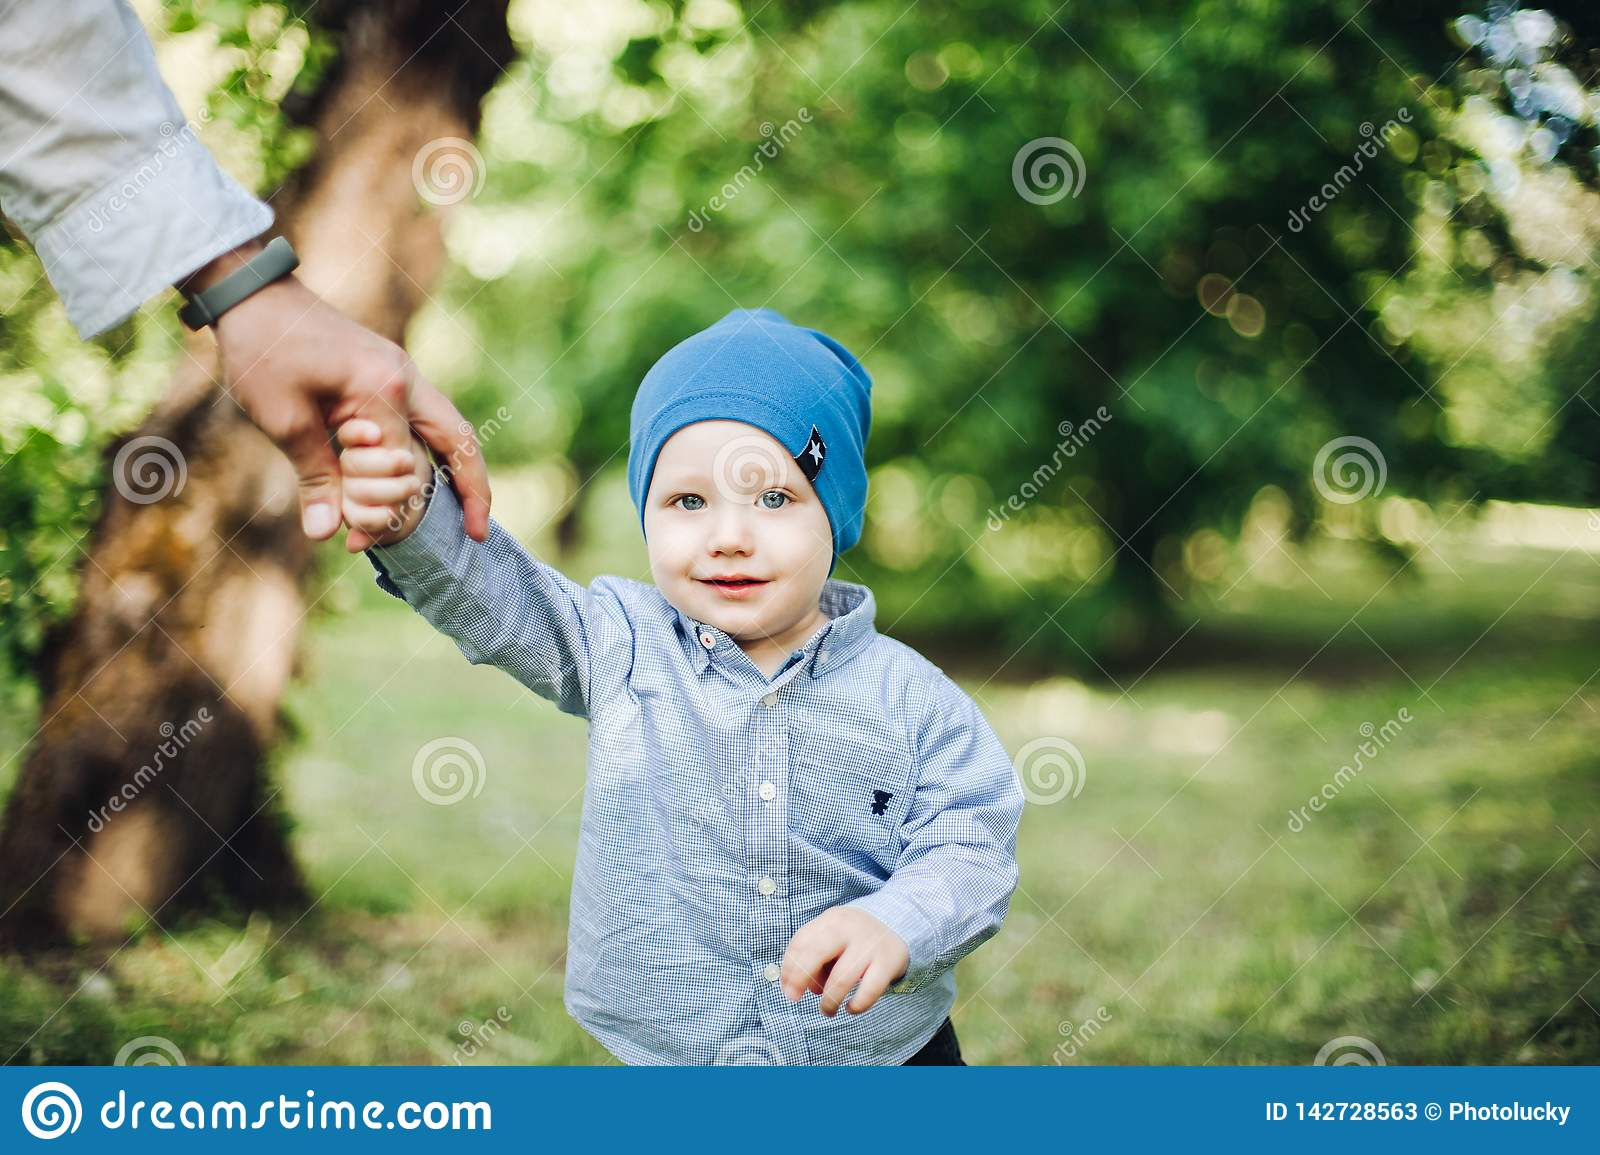 Crop of father holding by hand baby boy, walking in summer park. Little boy in blue cap wearing in checked shirt smiling and having fun outside in nature stock photos